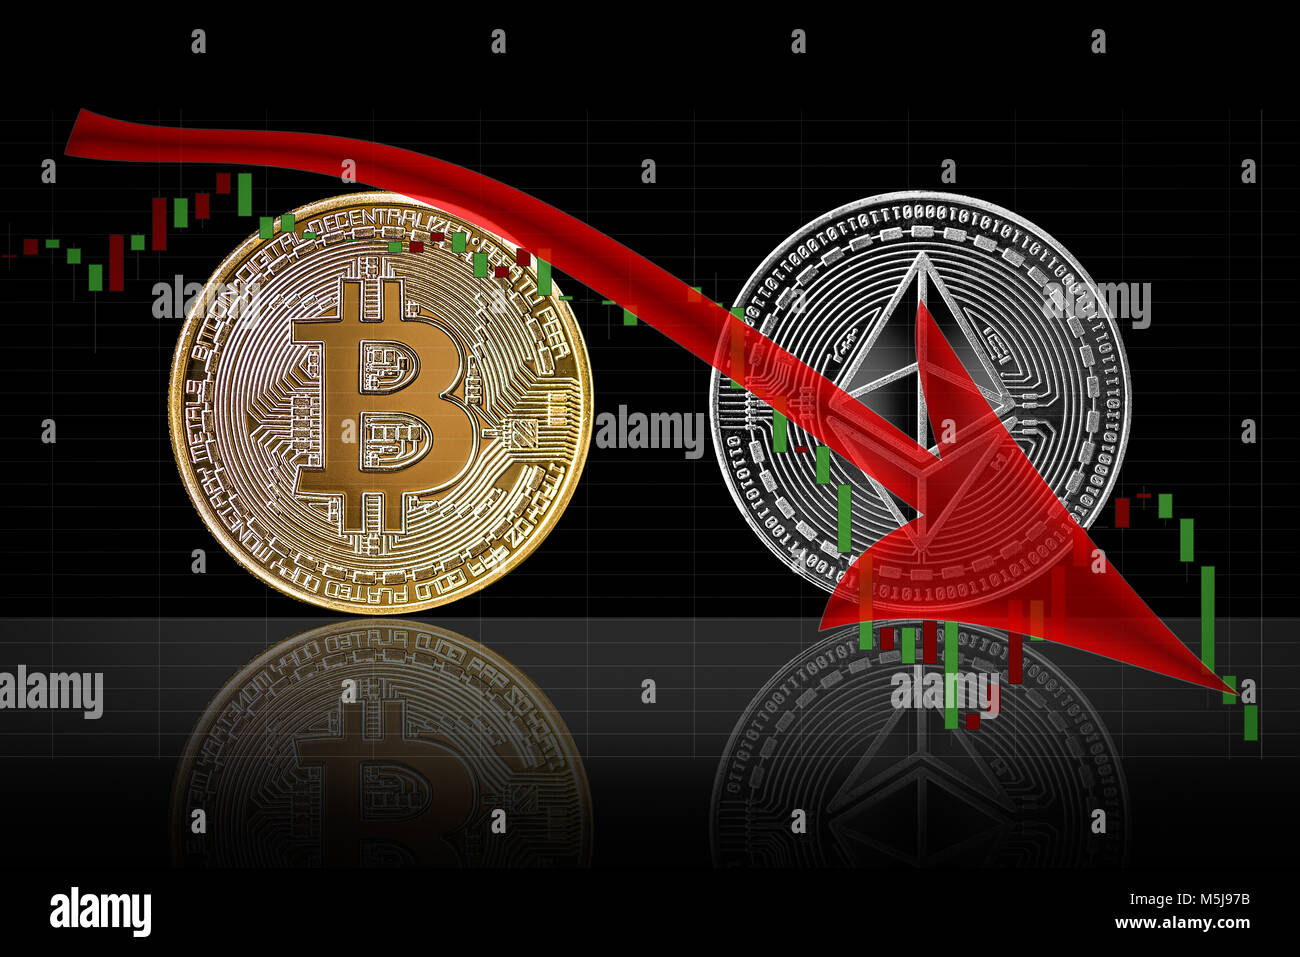 Bearish trend in cryptocurrency market of bitcoin and ethereum - Stock Image